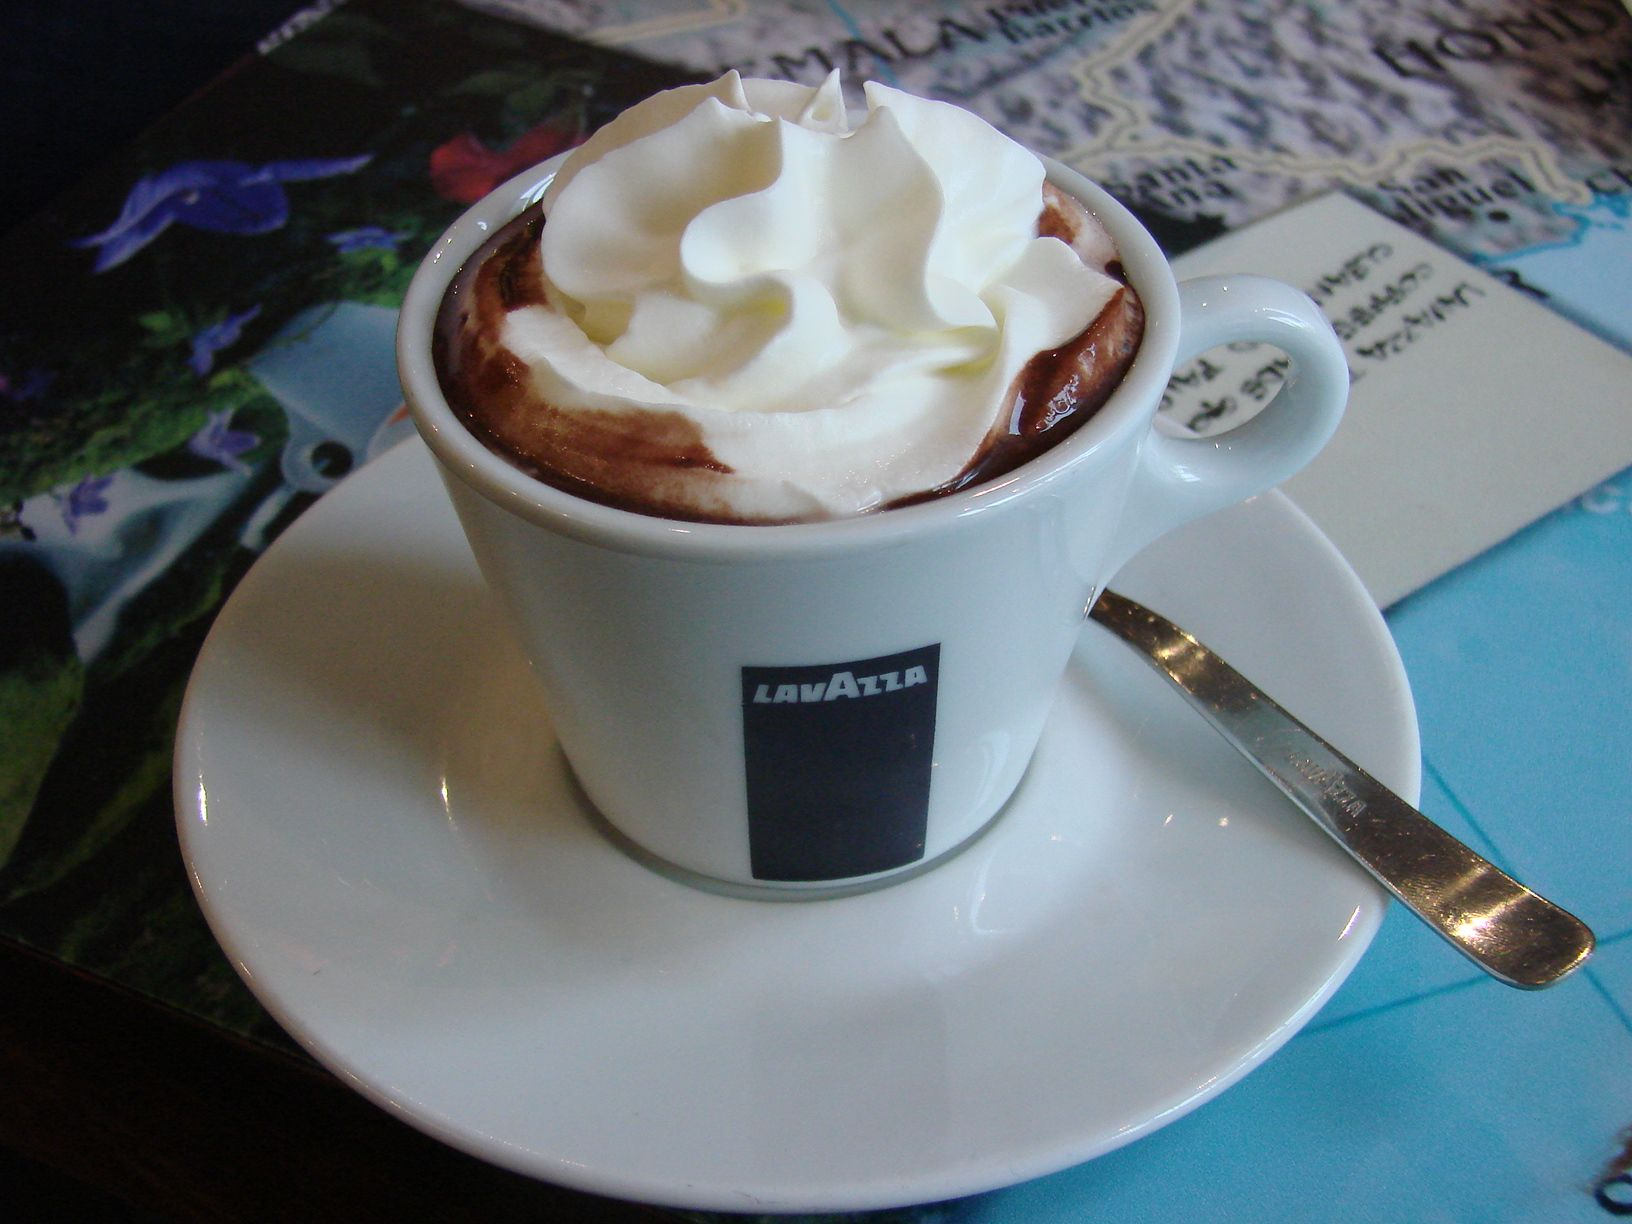 Eataly's Hot Chocolate ~A Concoction called Bicerin: parts thick hot chocolate, espresso & a cool layer of heavy cream. Heaven.